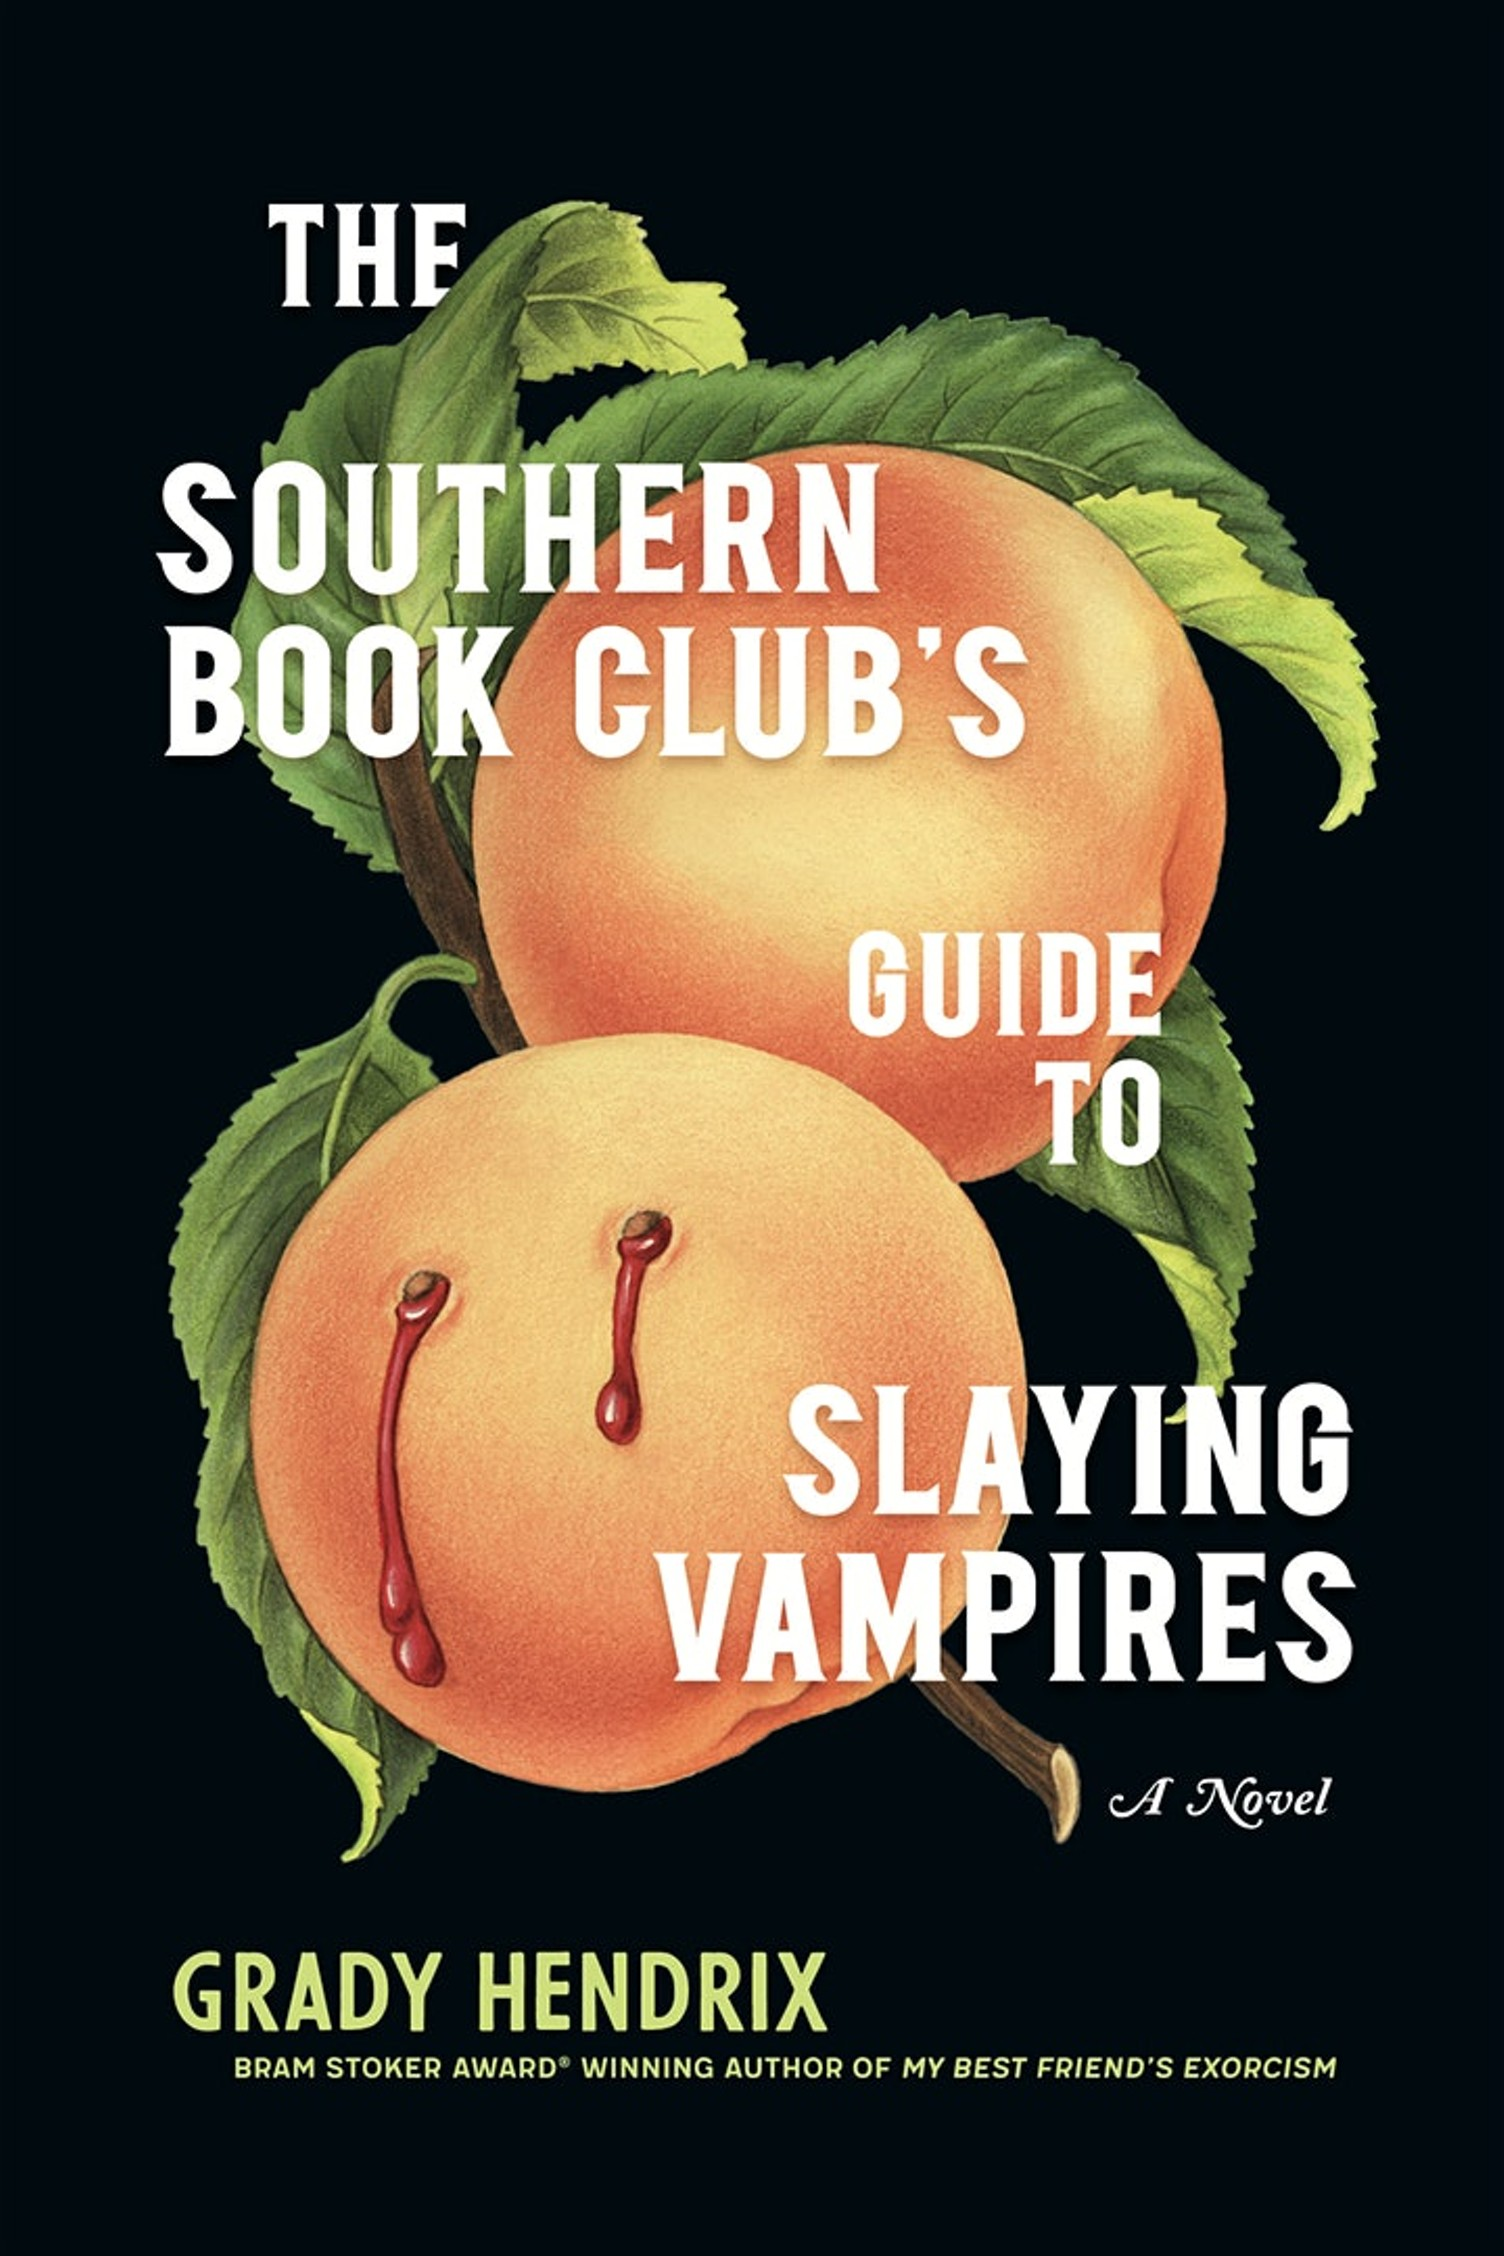 grady hendrix, the southern book club's guide to slaying vampires